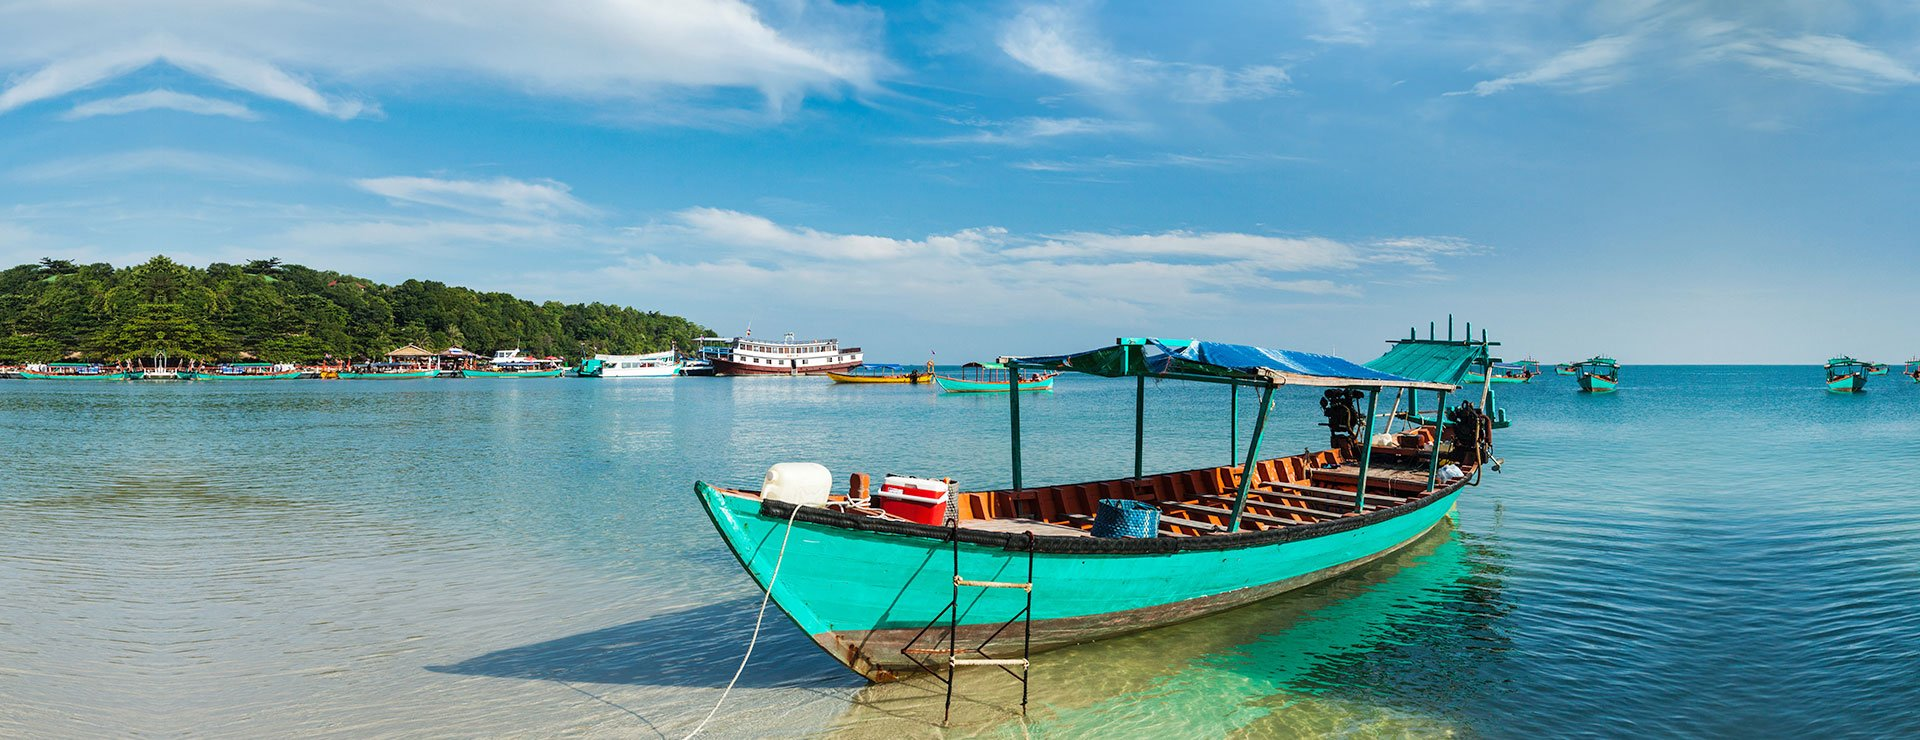 Top 8 things to do in the tropical paradise Koh Rong Samloem of Cambodia